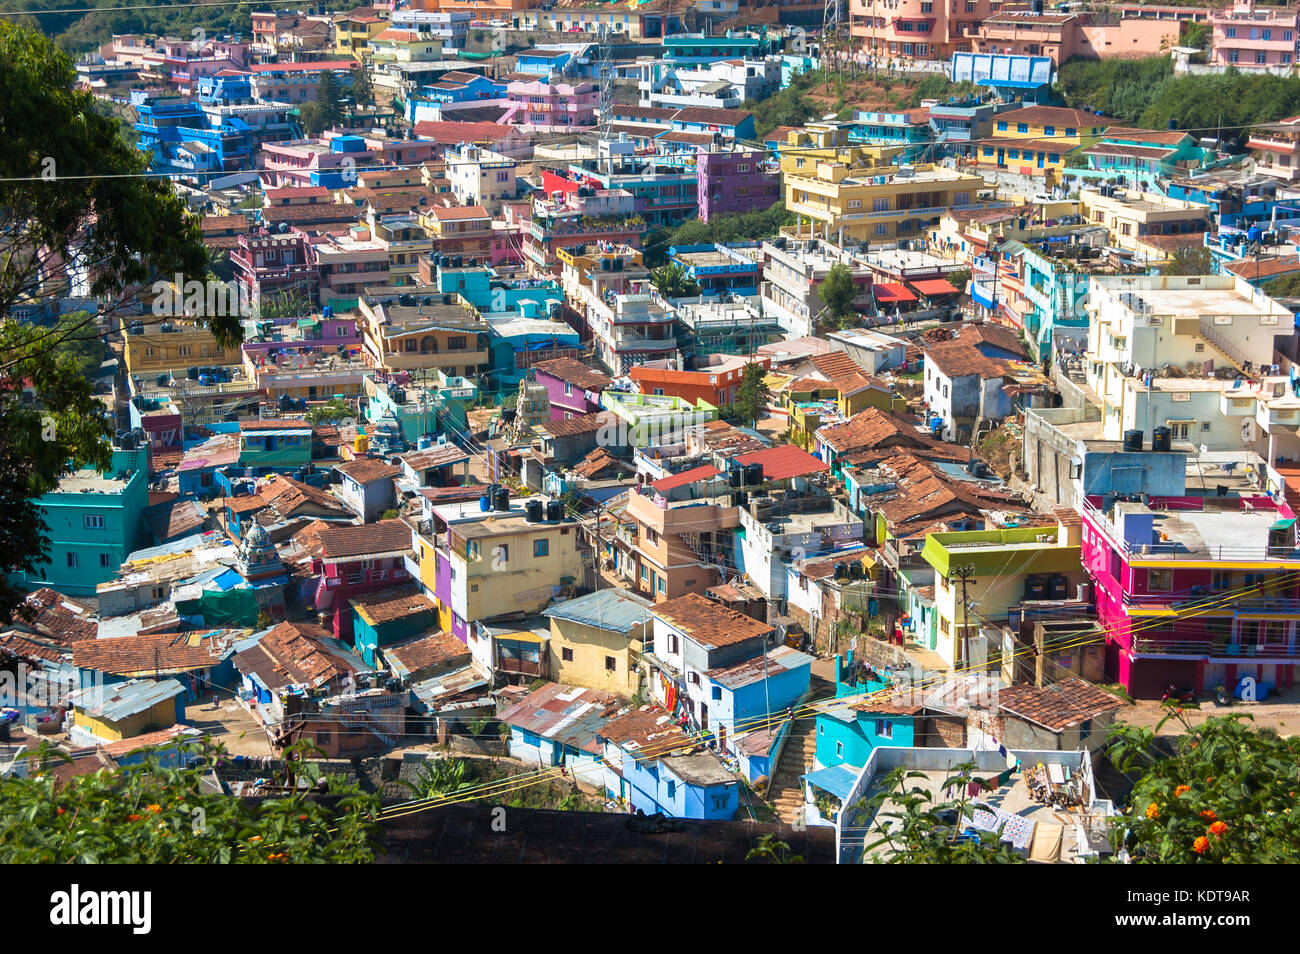 Cheap Roof Stock Photos & Cheap Roof Stock Images - Alamy